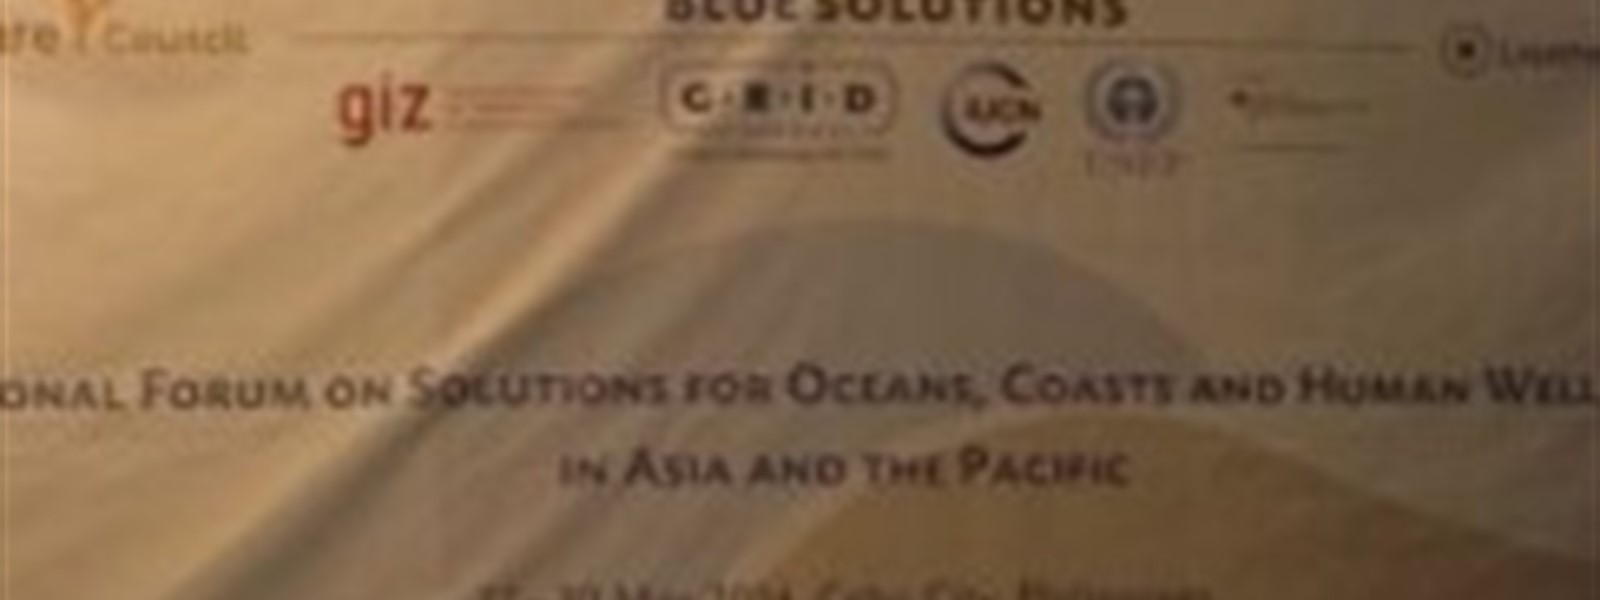 Picture of the banner for the Regional Forum on Solutions for Oceans, Coasts and Human Well-Being in Asia and the Pacific forum.